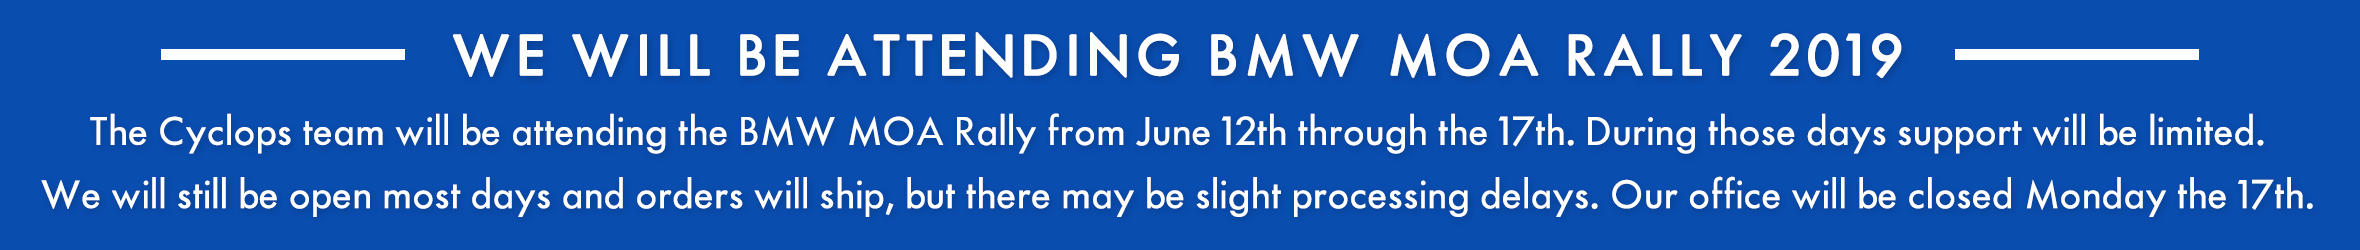 The Cyclops team will be attending the BMW MOA Rally from June 13th through the 16th. During those days and Monday the 17th tech support will be limited. Our office will still be open and orders will ship, but there may be slight processing delays.